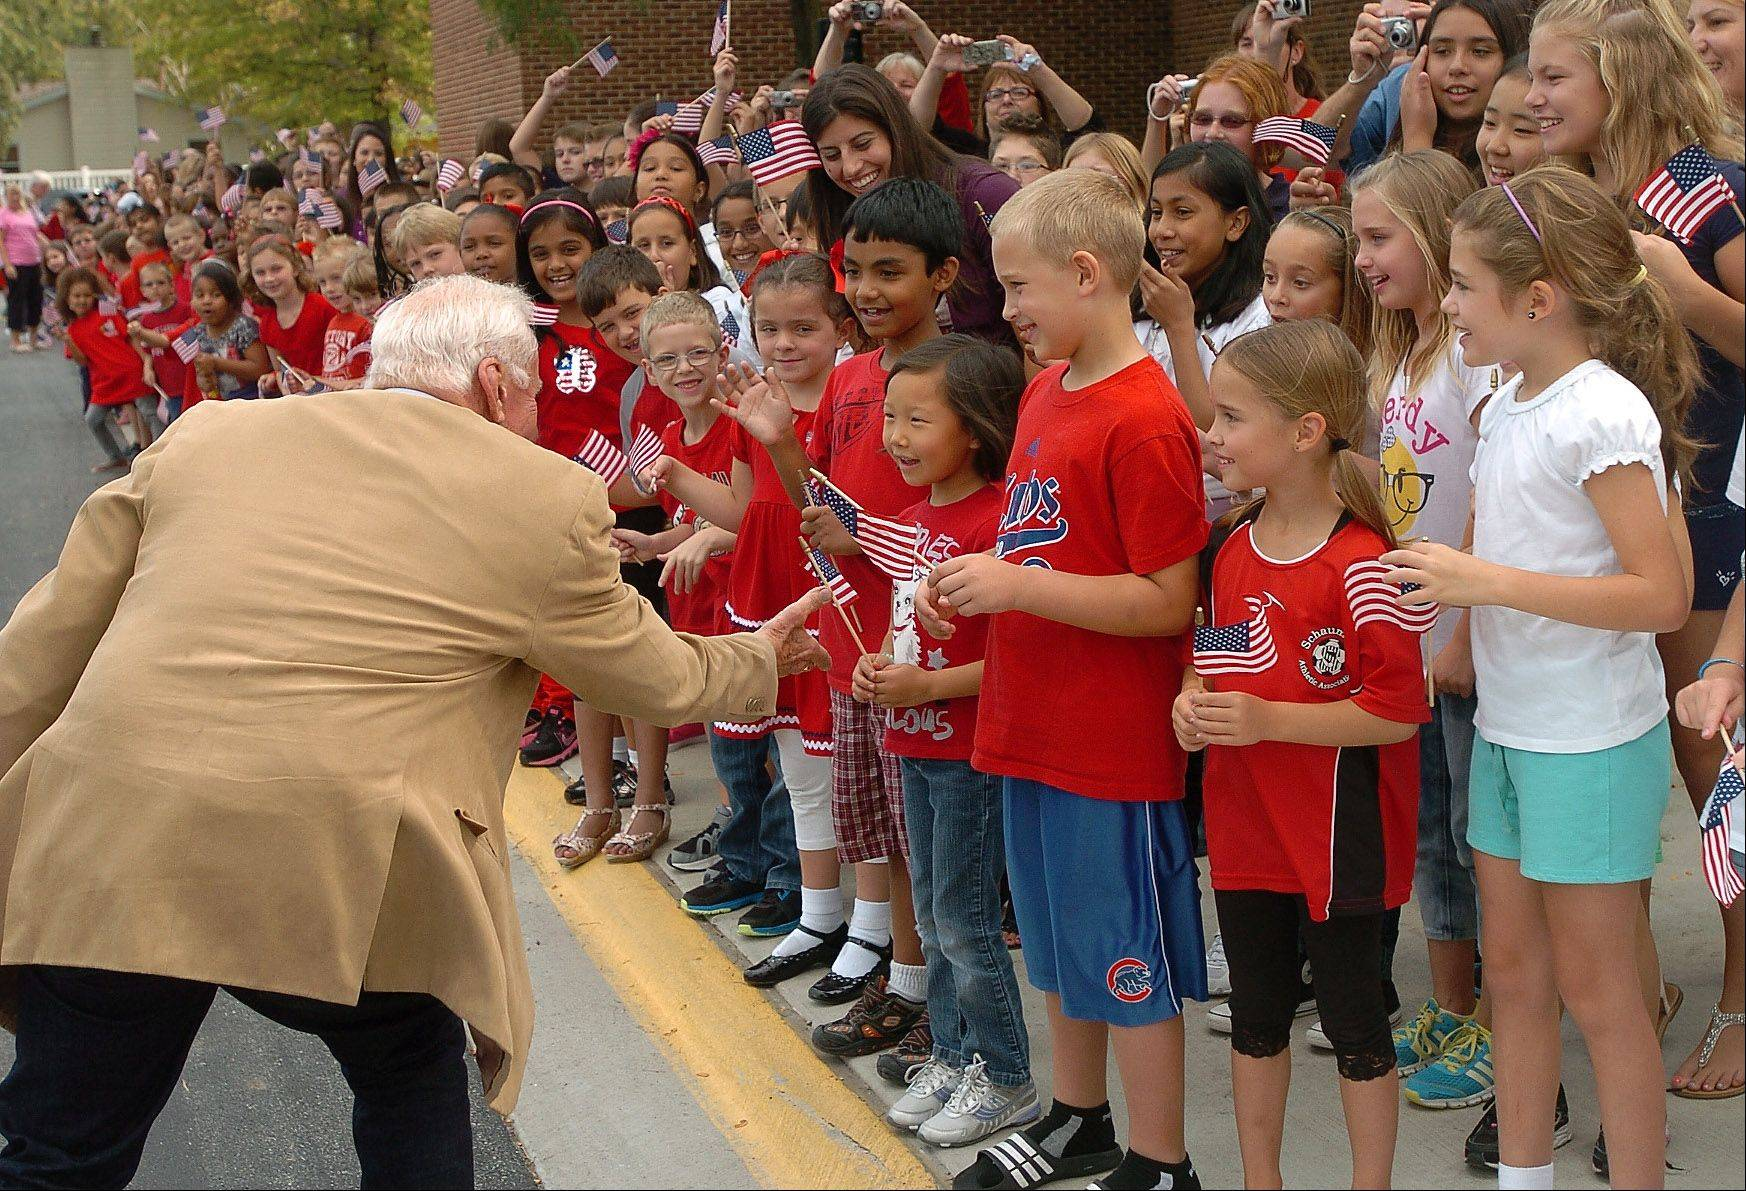 Astronaut Buzz Aldrin visits Edwin Aldrin Elementary School in Schaumburg, which was named after him in 1971. Here greeting students upon arrival.